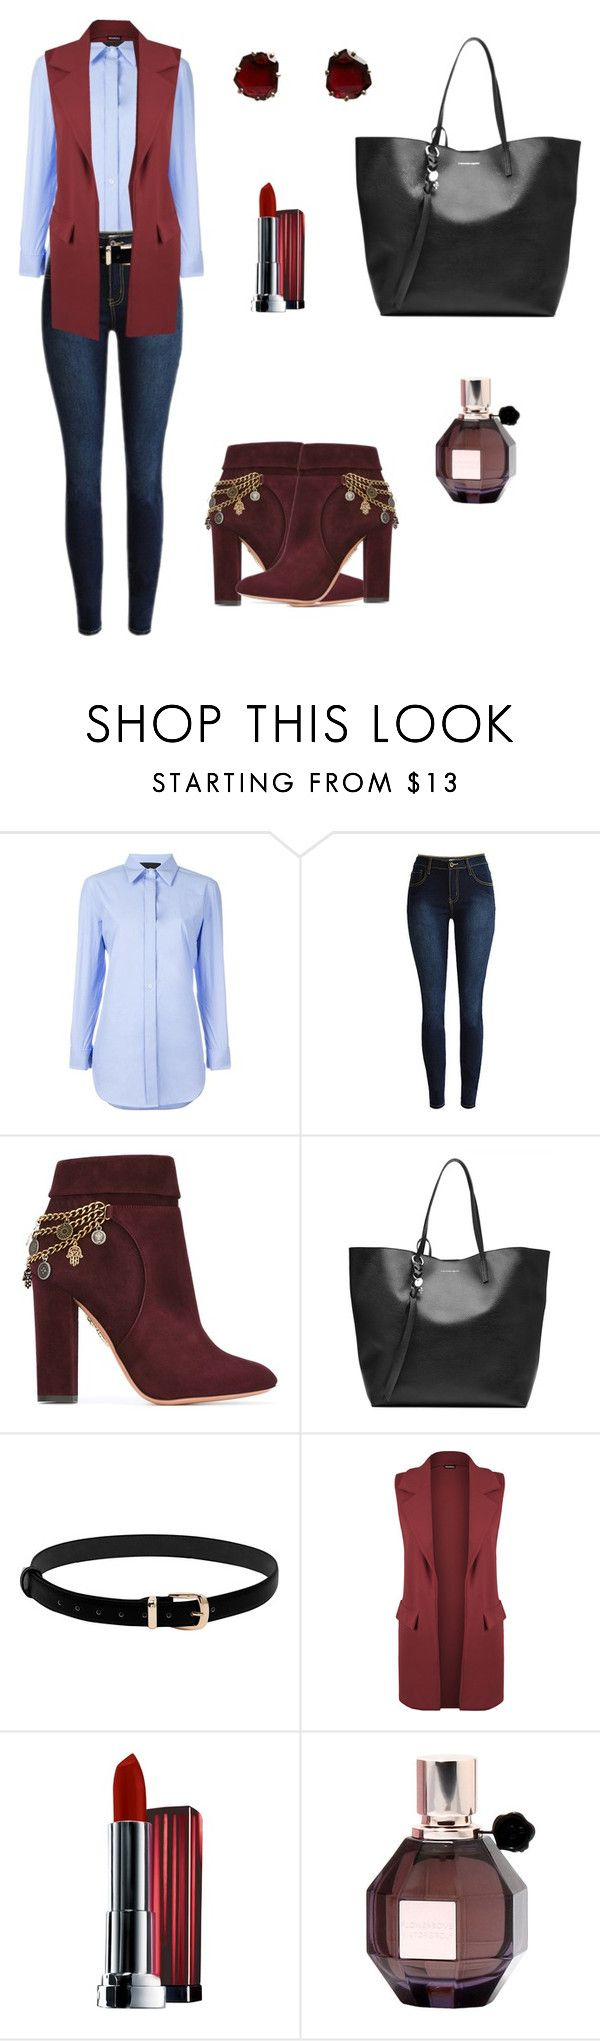 """""""Untitled #392"""" by mariafilomena471 ❤ liked on Polyvore featuring Erika Cavallini Semi-Couture, Aquazzura, Alexander McQueen, WearAll, Maybelline, Viktor & Rolf and Annoushka"""